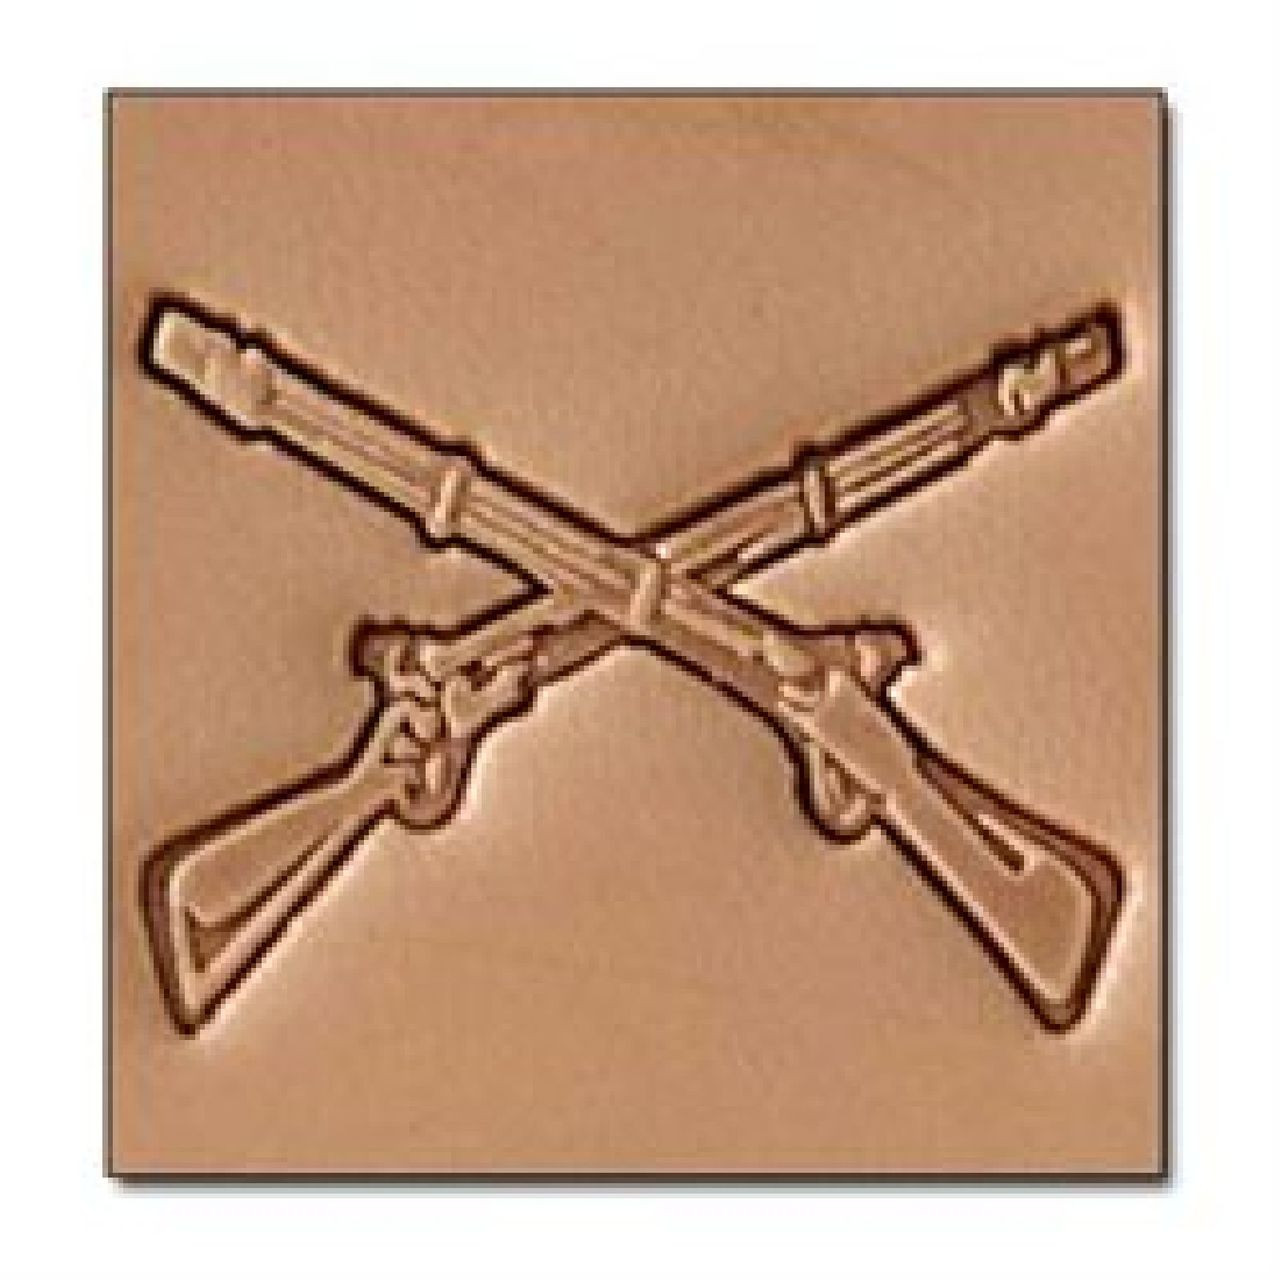 Craftool 3D Rifles Stamp 8688-00 by Tandy Leather